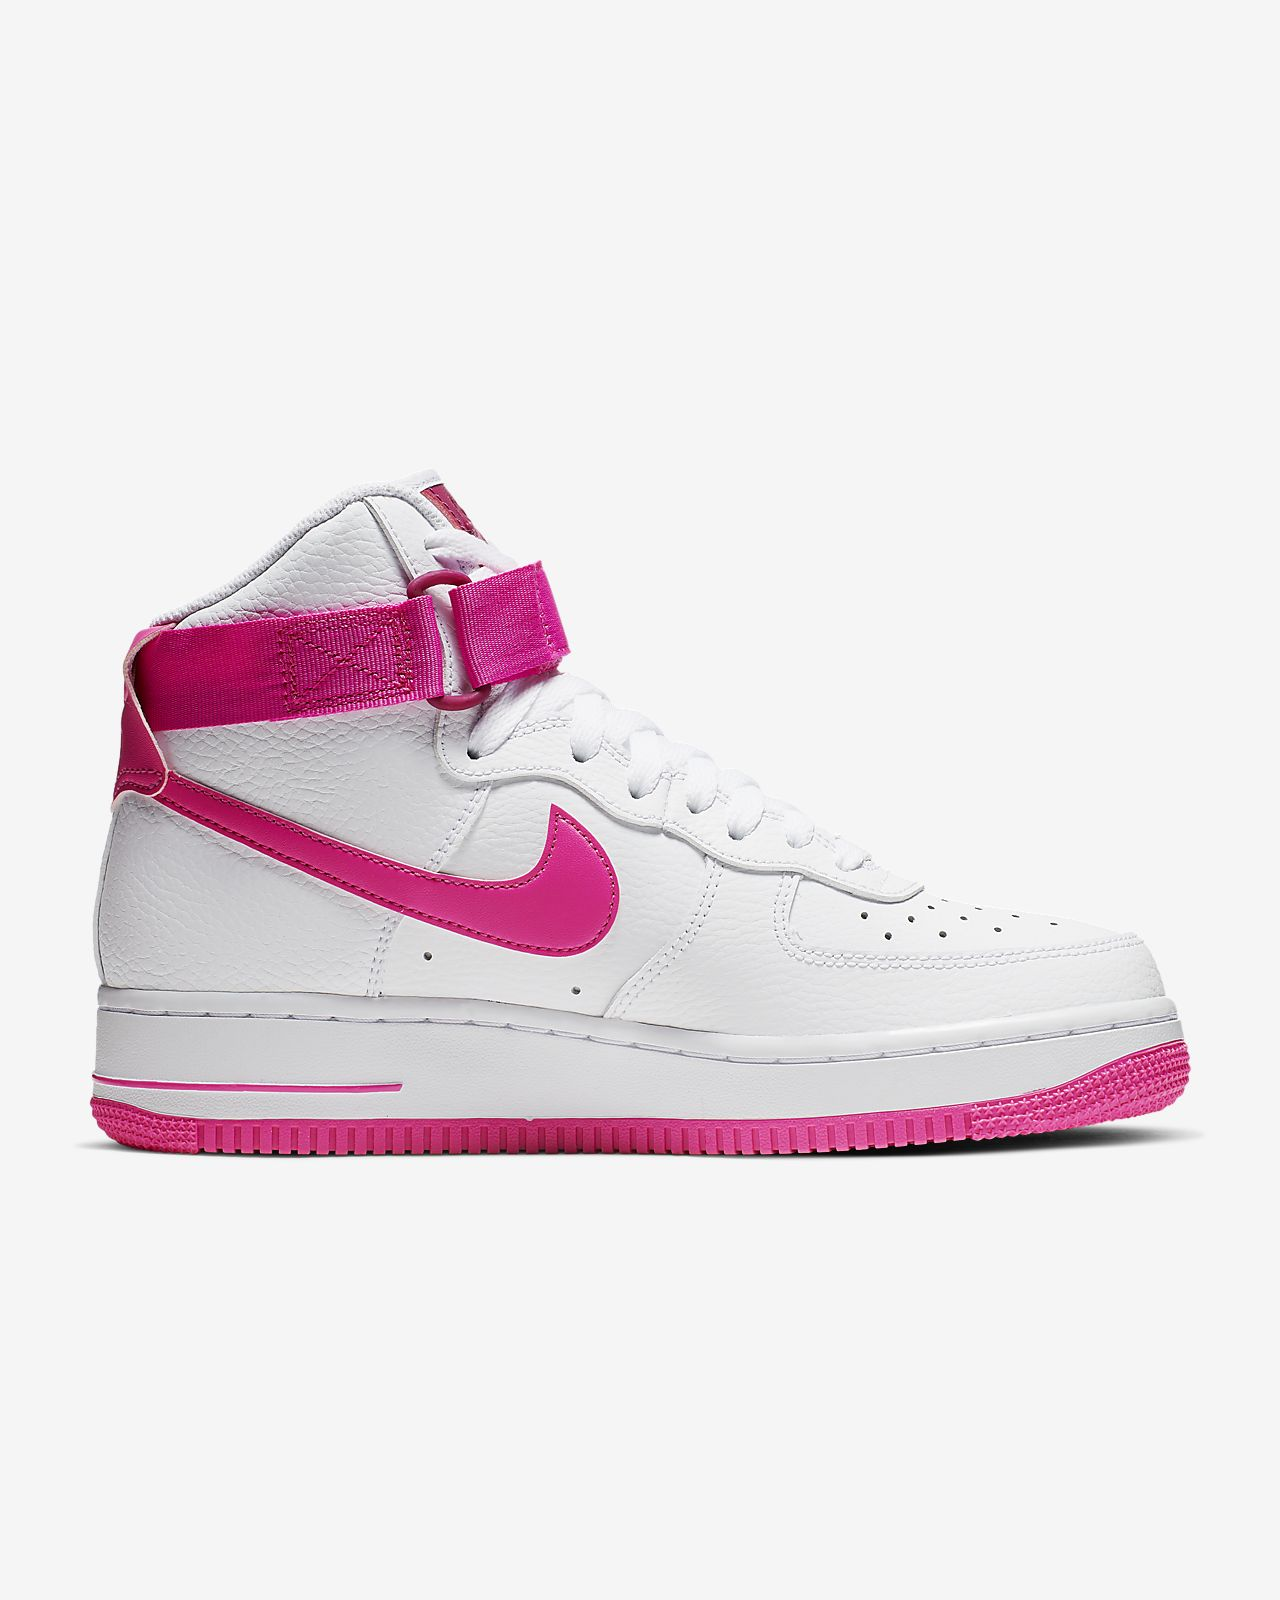 best website d415a 5dd43 ... Nike Air Force 1 High 08 LE Women s Shoe